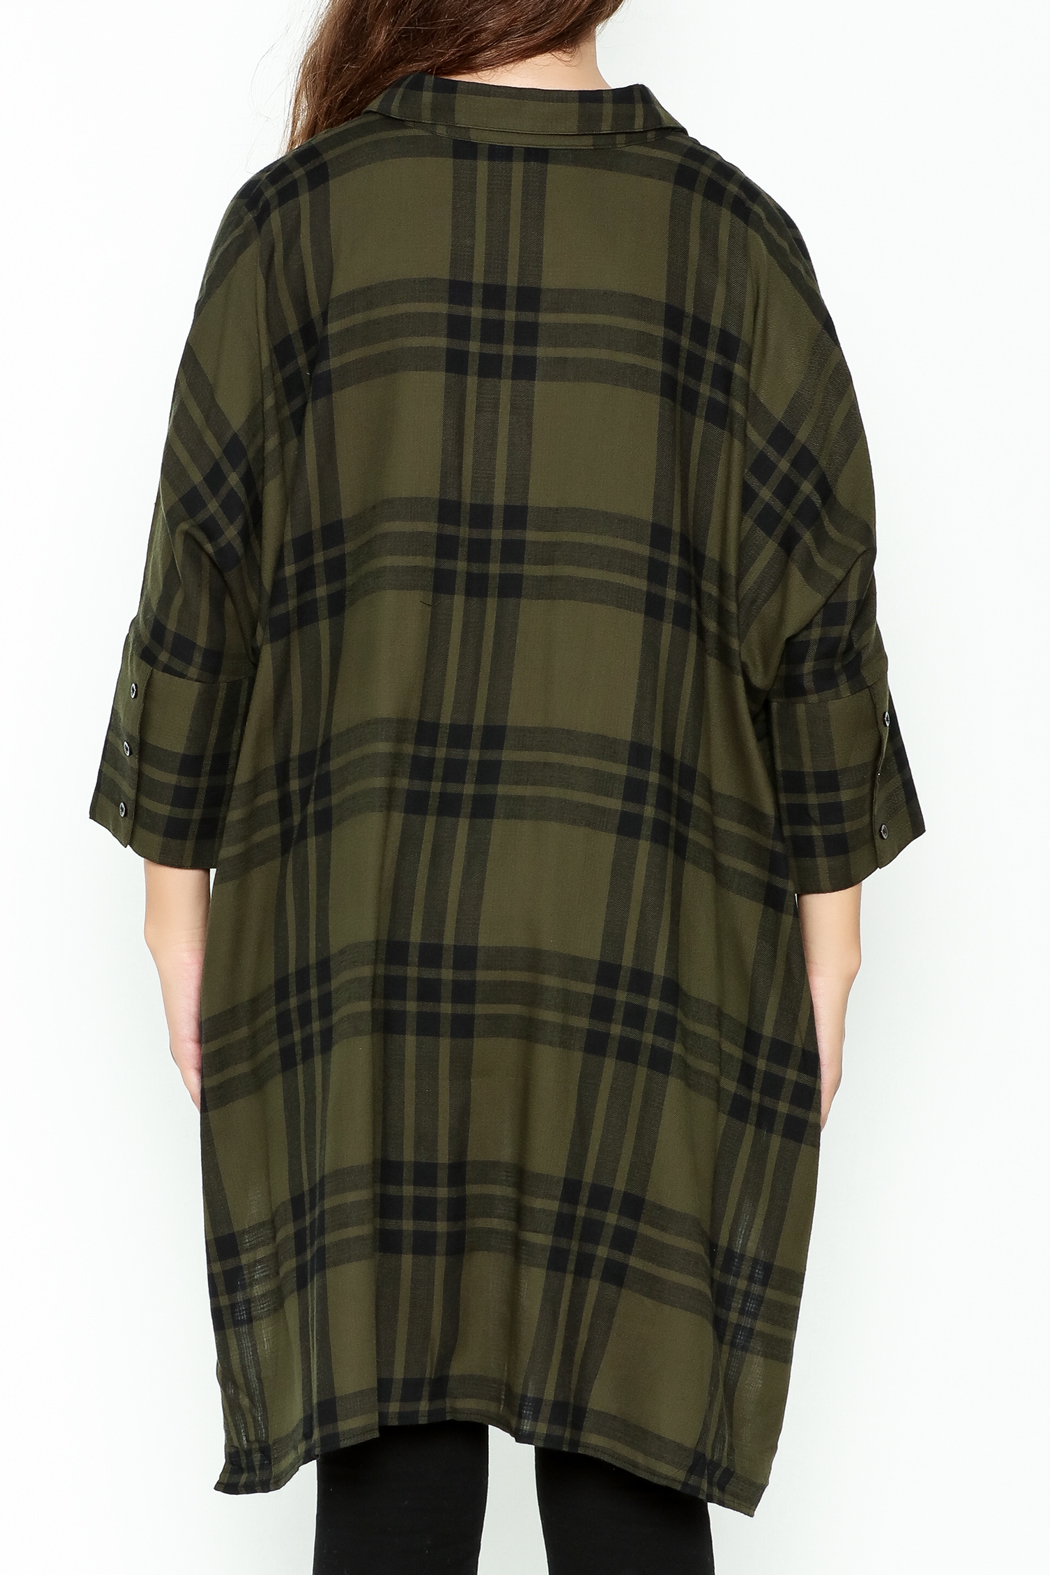 Katherine Barclay Oversized Button Up Tunic - Back Cropped Image